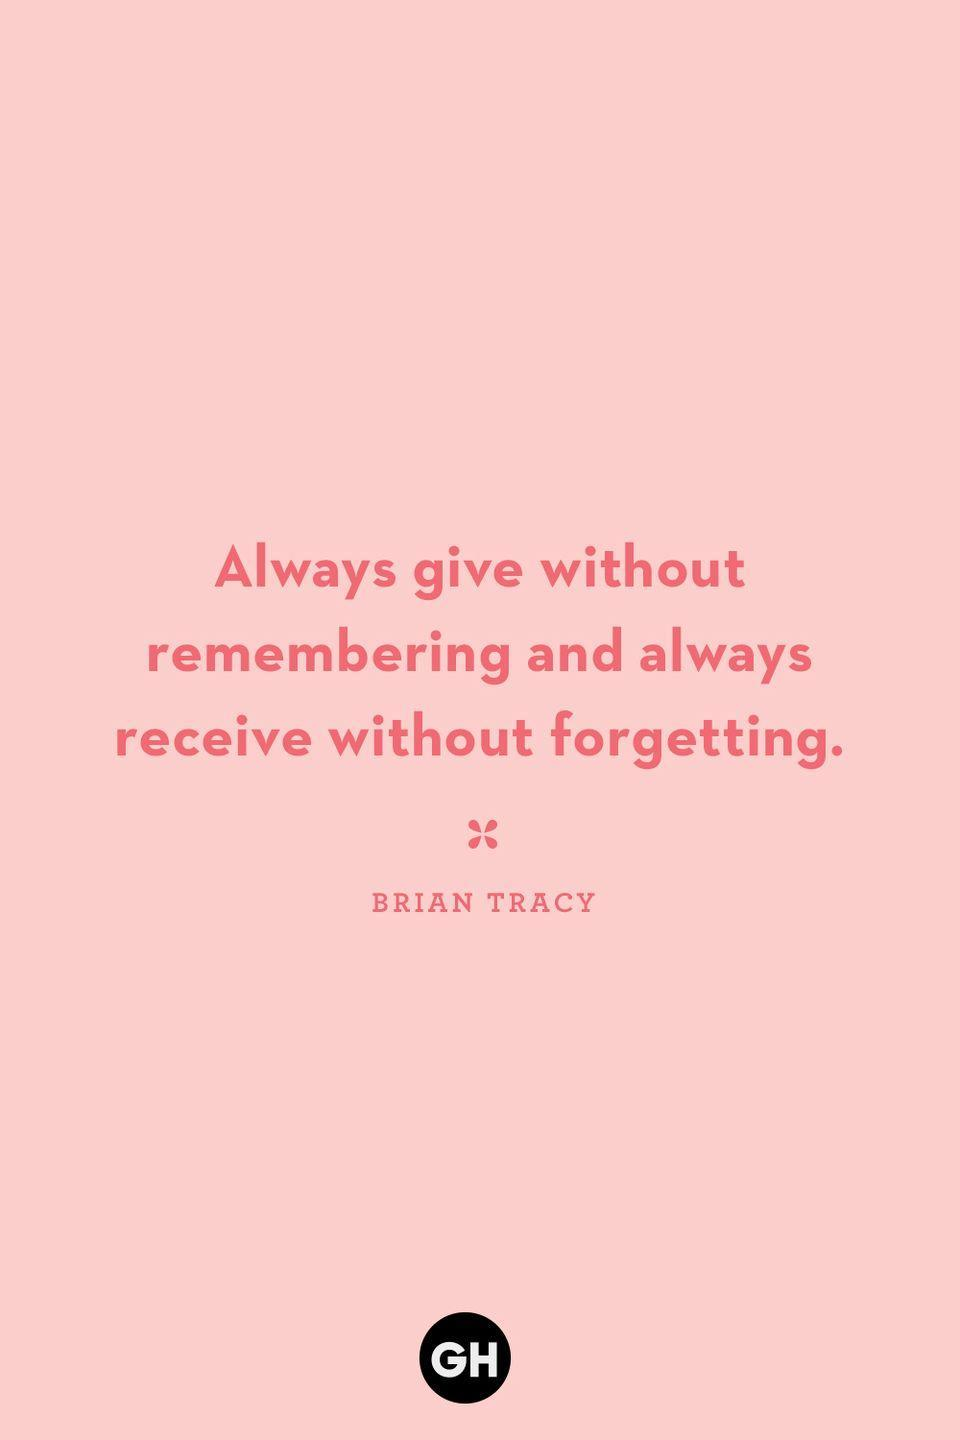 <p>Always give without remembering and always receive without forgetting.</p>